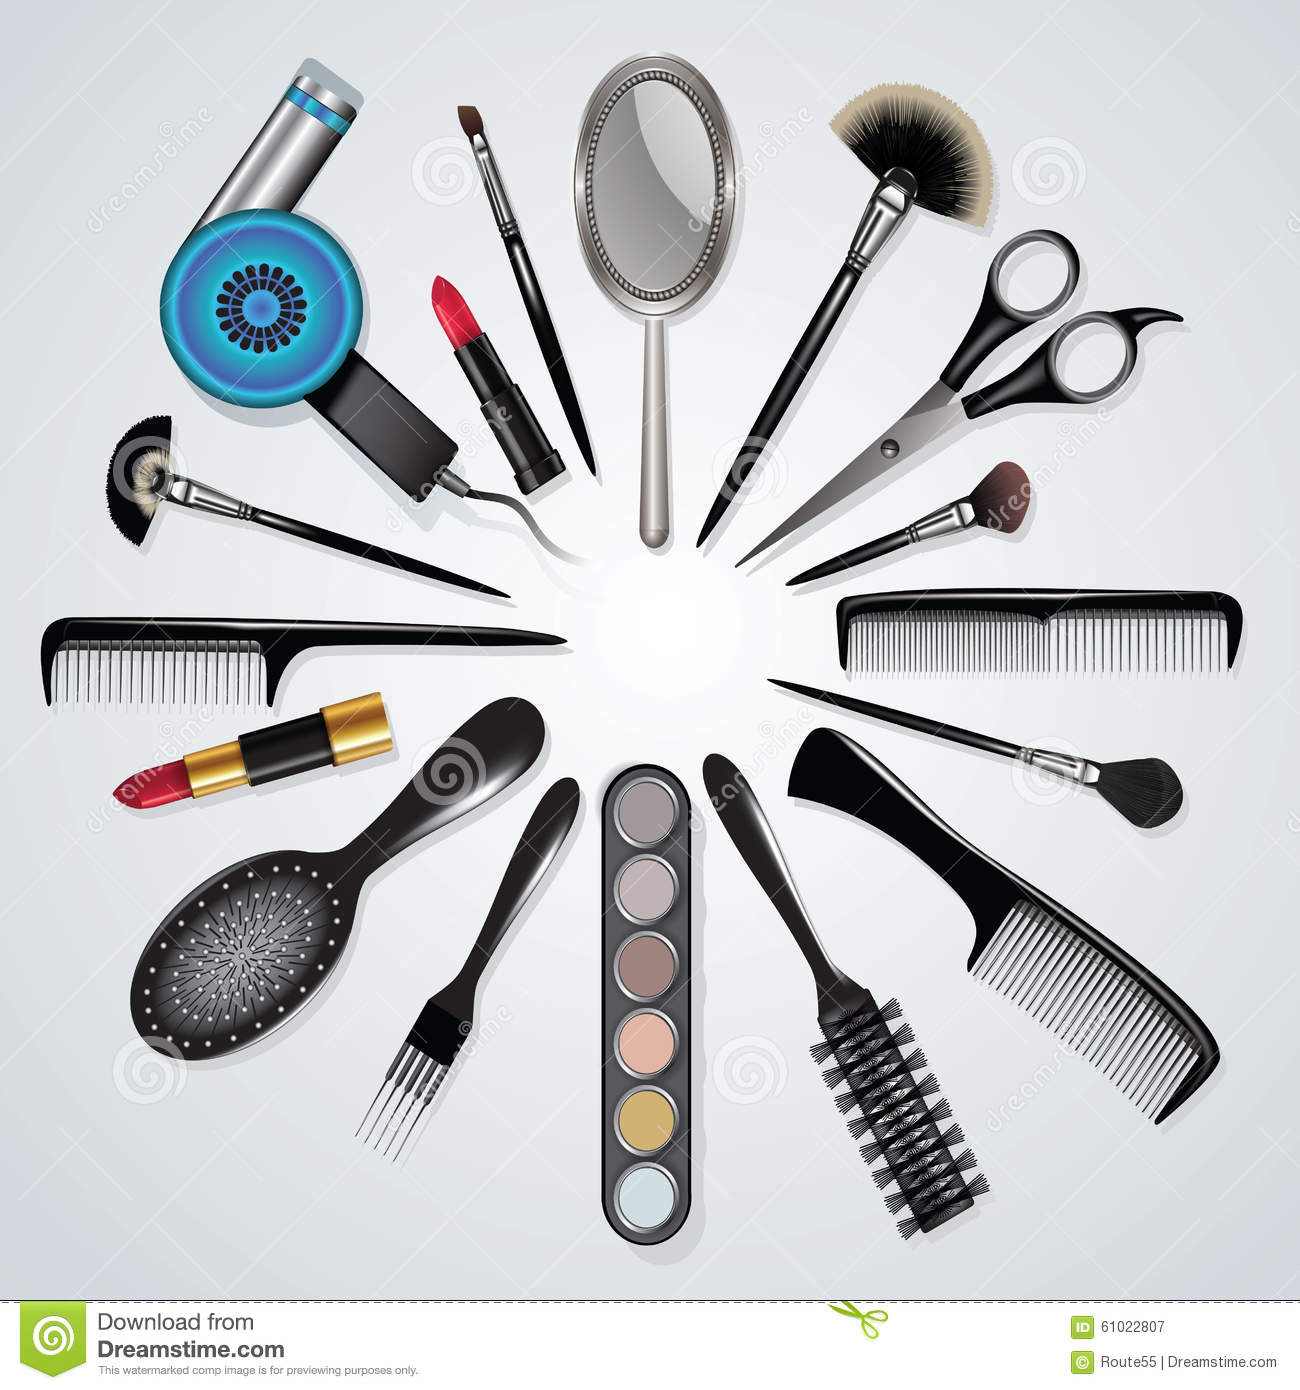 Makeup and hairstyle tools stock image. Image of smoke - 60127593